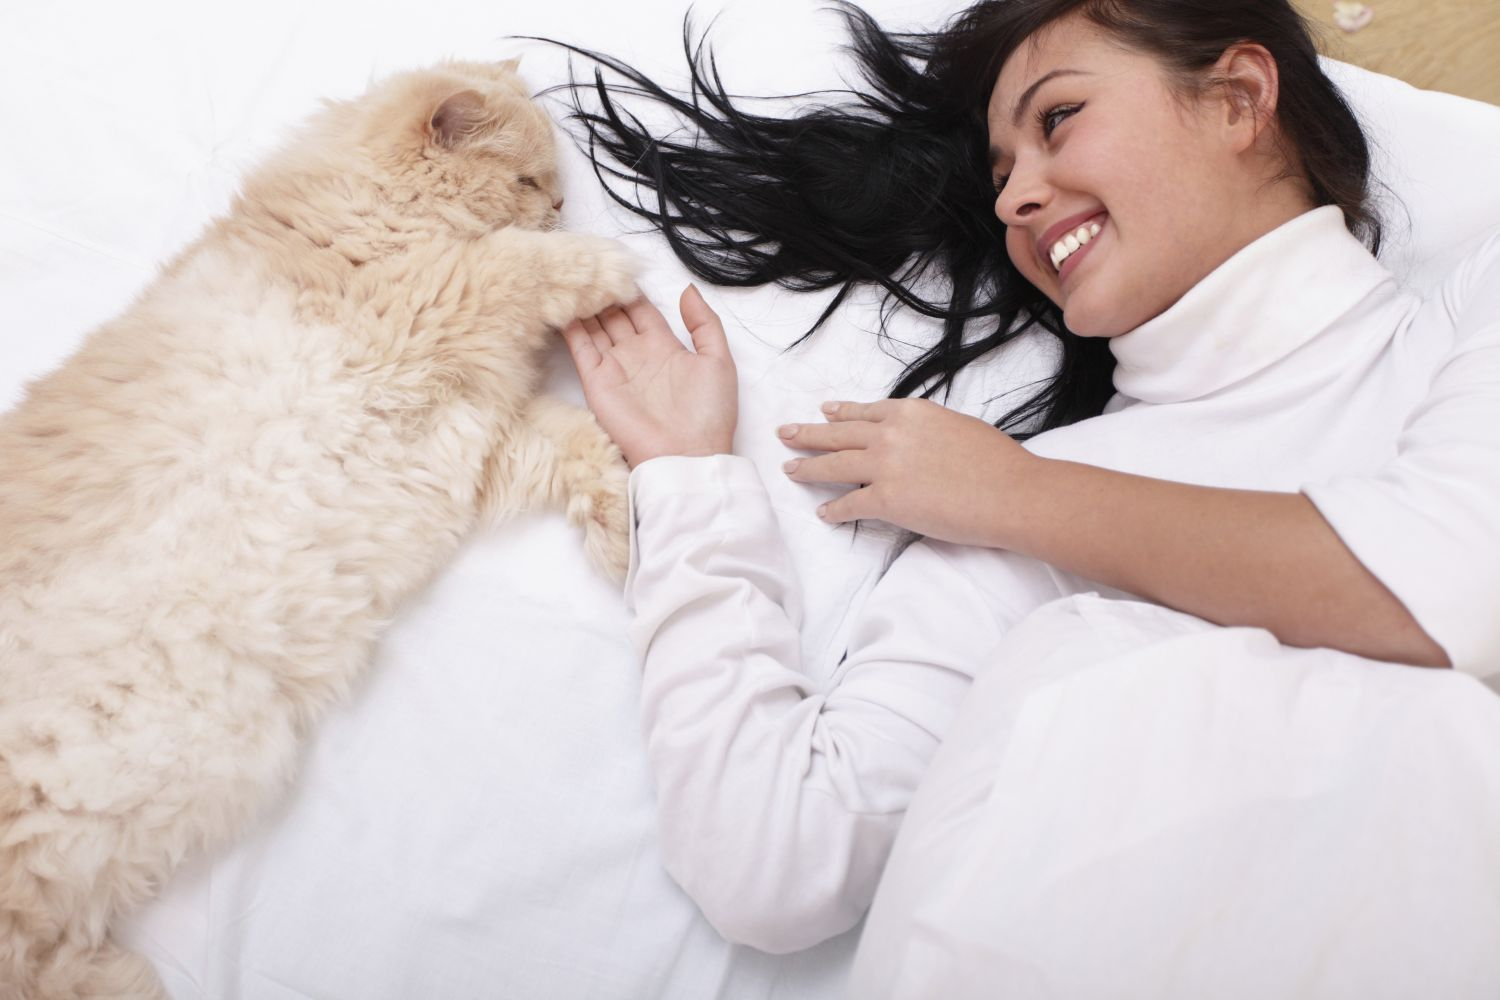 Woman playing with healthy pet after animal vaccinations in Cincinnati, OH